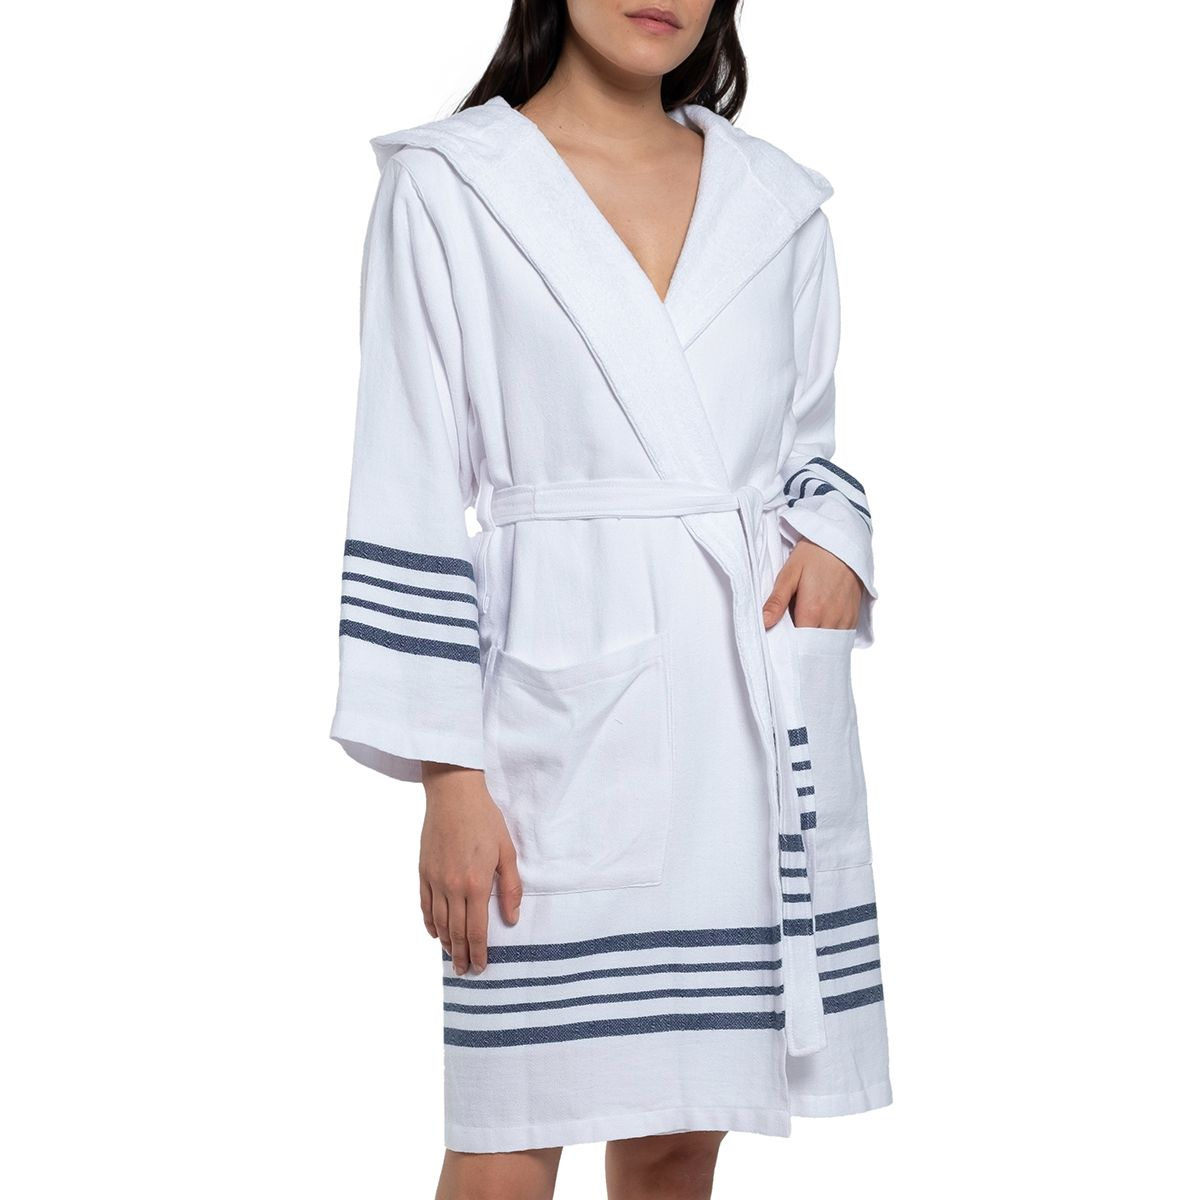 Bathrobe White Sultan with hood & terry - Navy Stripes